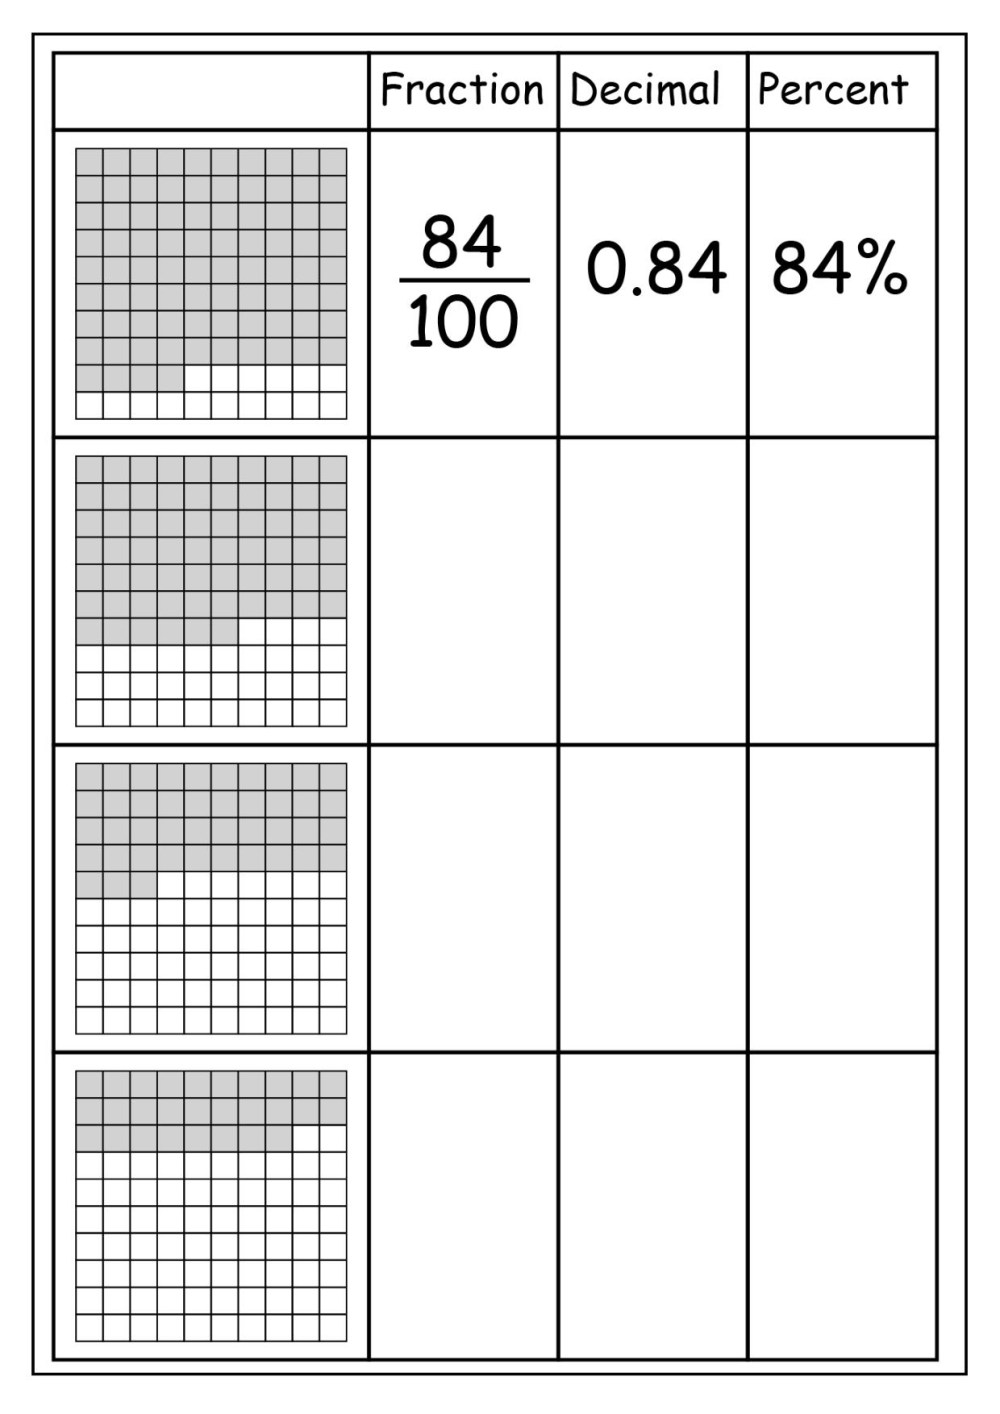 medium resolution of Mixed Fractions Reducing Fractions Worksheet 6th Grade   Printable  Worksheets and Activities for Teachers